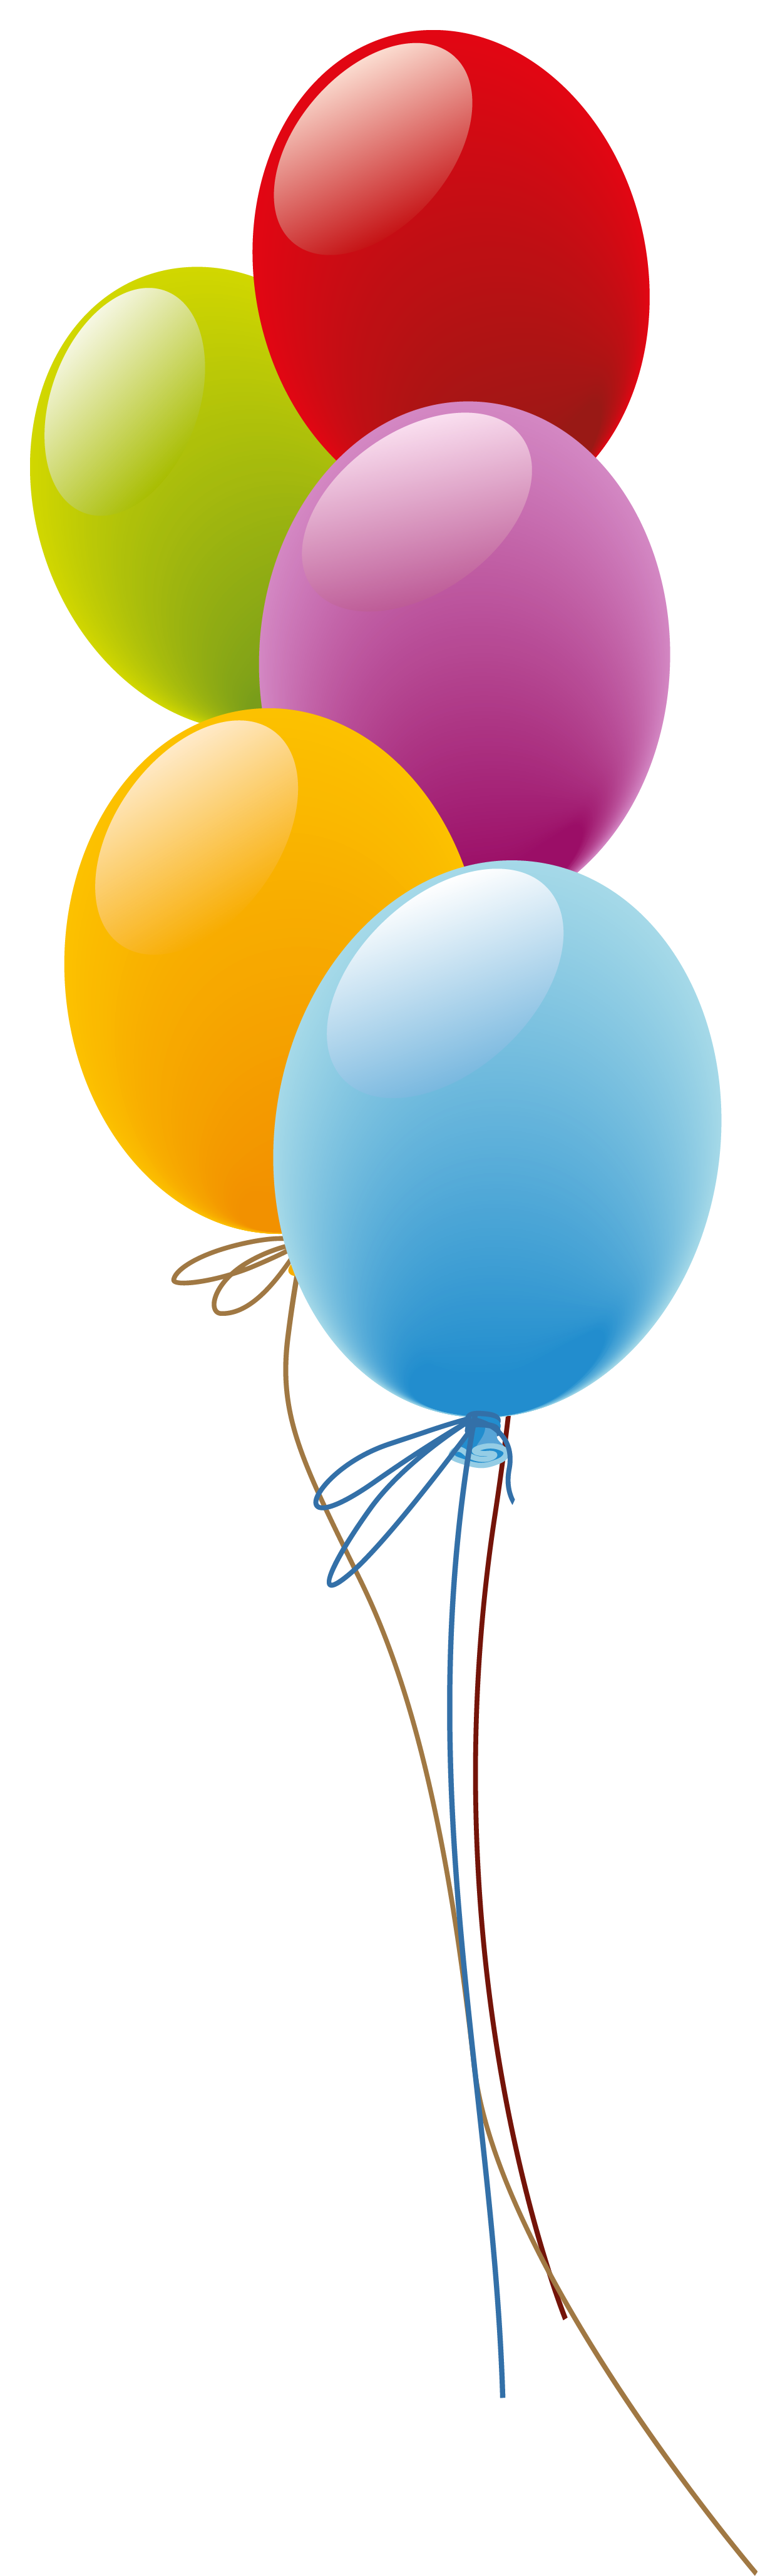 Four clipart birthday baloon. Balloons png picture artistic